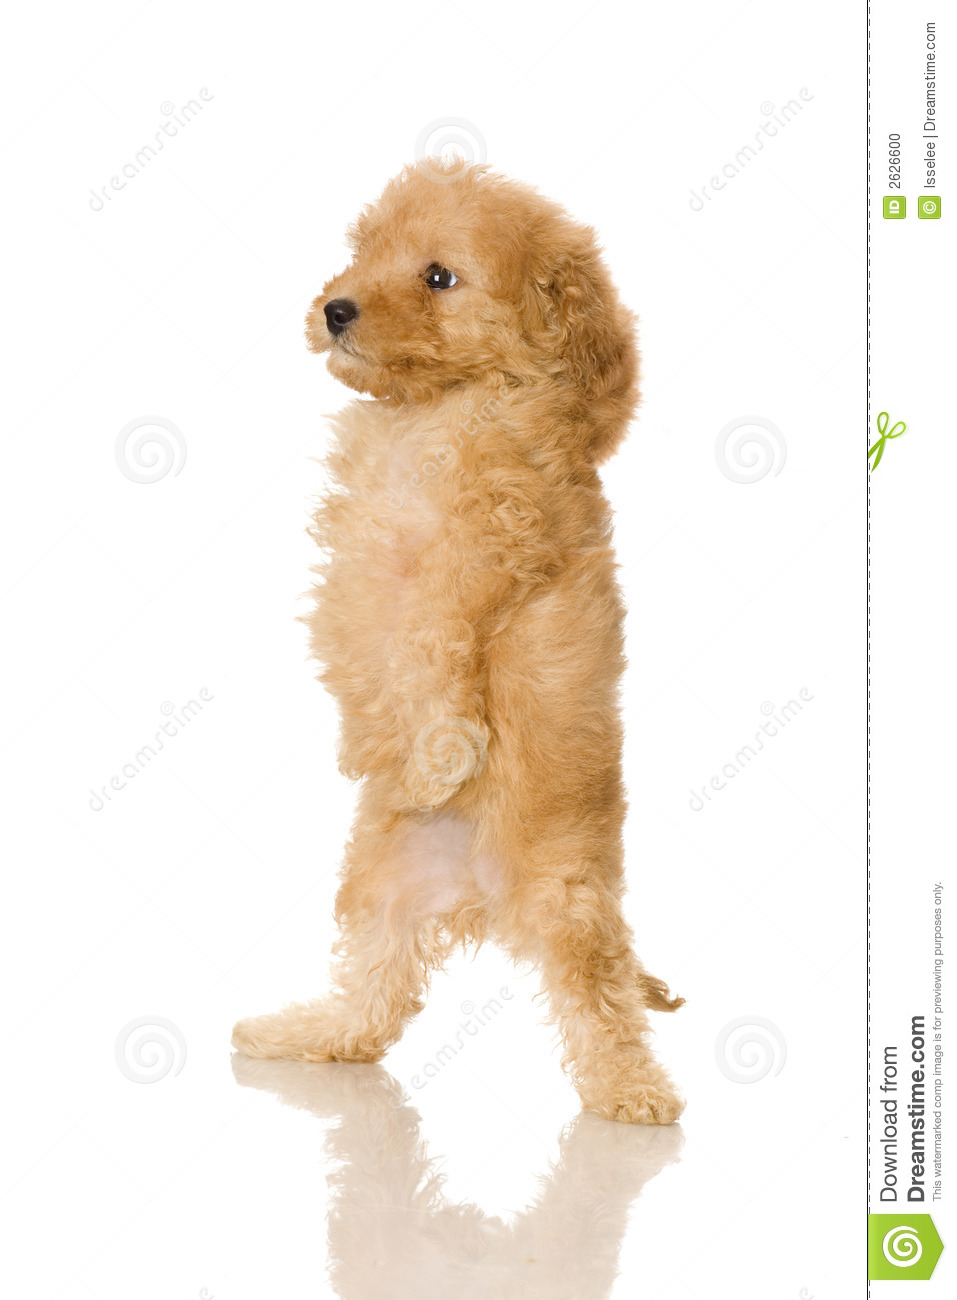 Watch further Stock Photo Yorkshire Terrier Dog Fancy Clothes Image23747500 as well 518054763363402982 together with 26697 Red Toy Poodle Dog And Ragdoll Cross Kitten as well Ruby The Silky Terrier 2010 12 05. on cute poodles